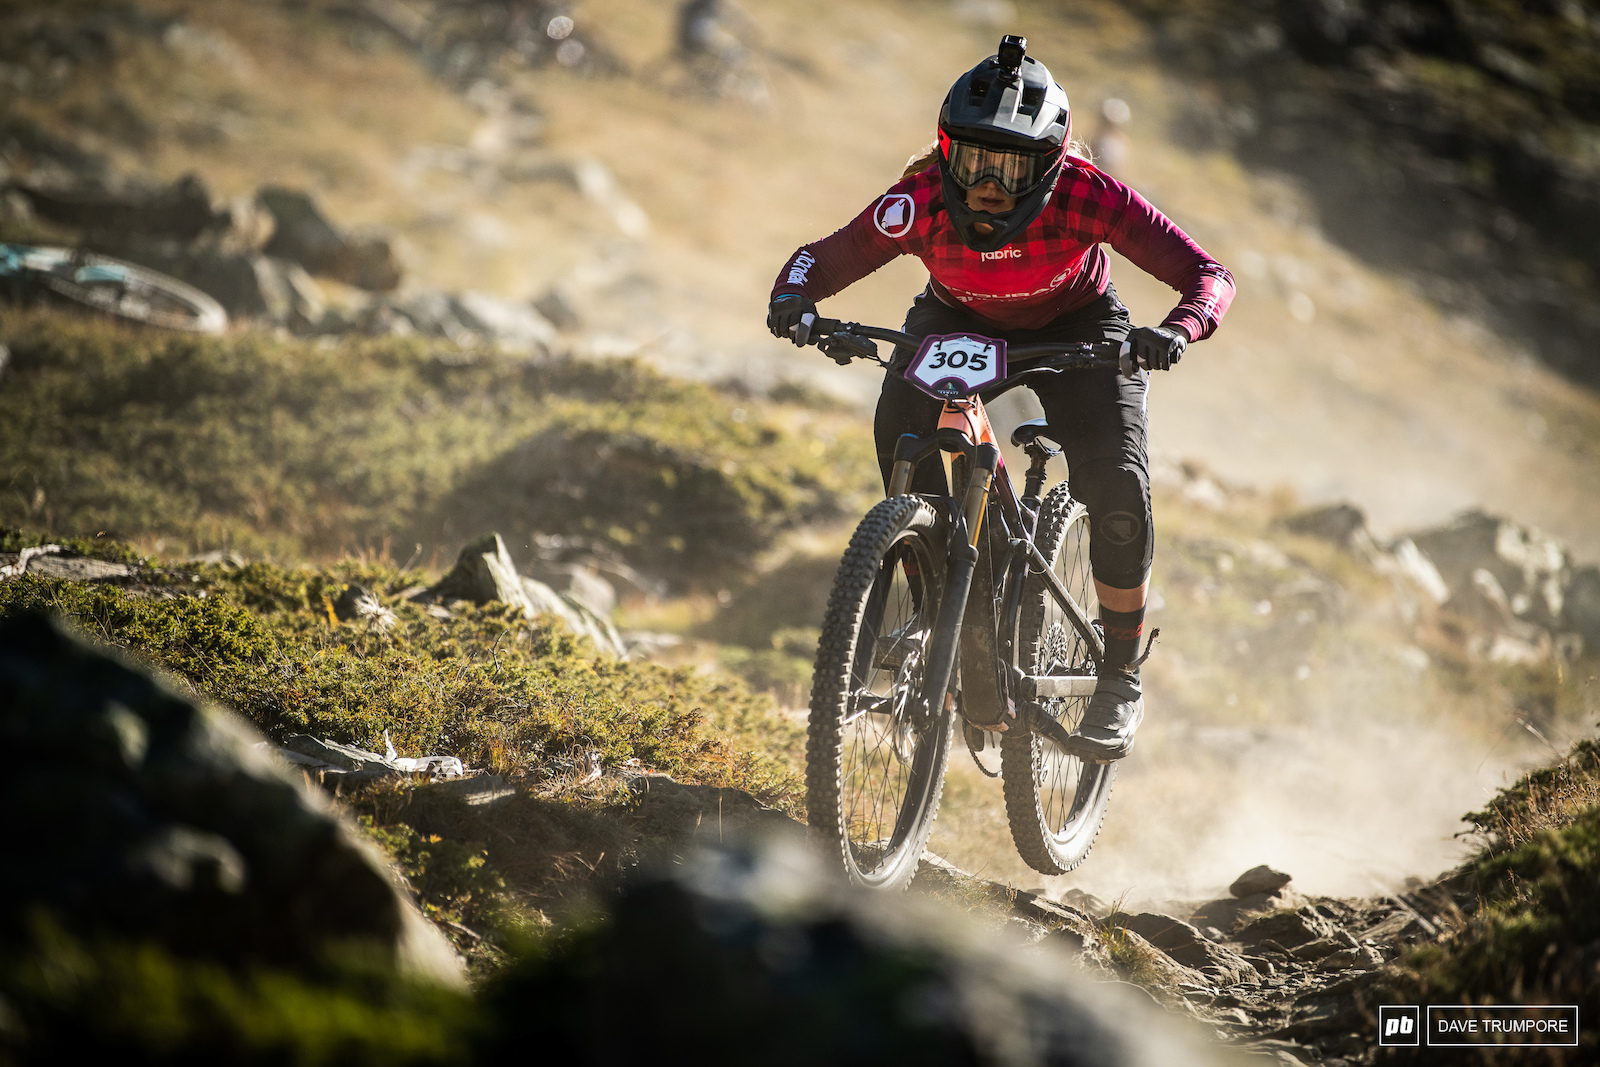 Ella Conolly is racing for the fist time after a broken elbow took her out back in Les Orres